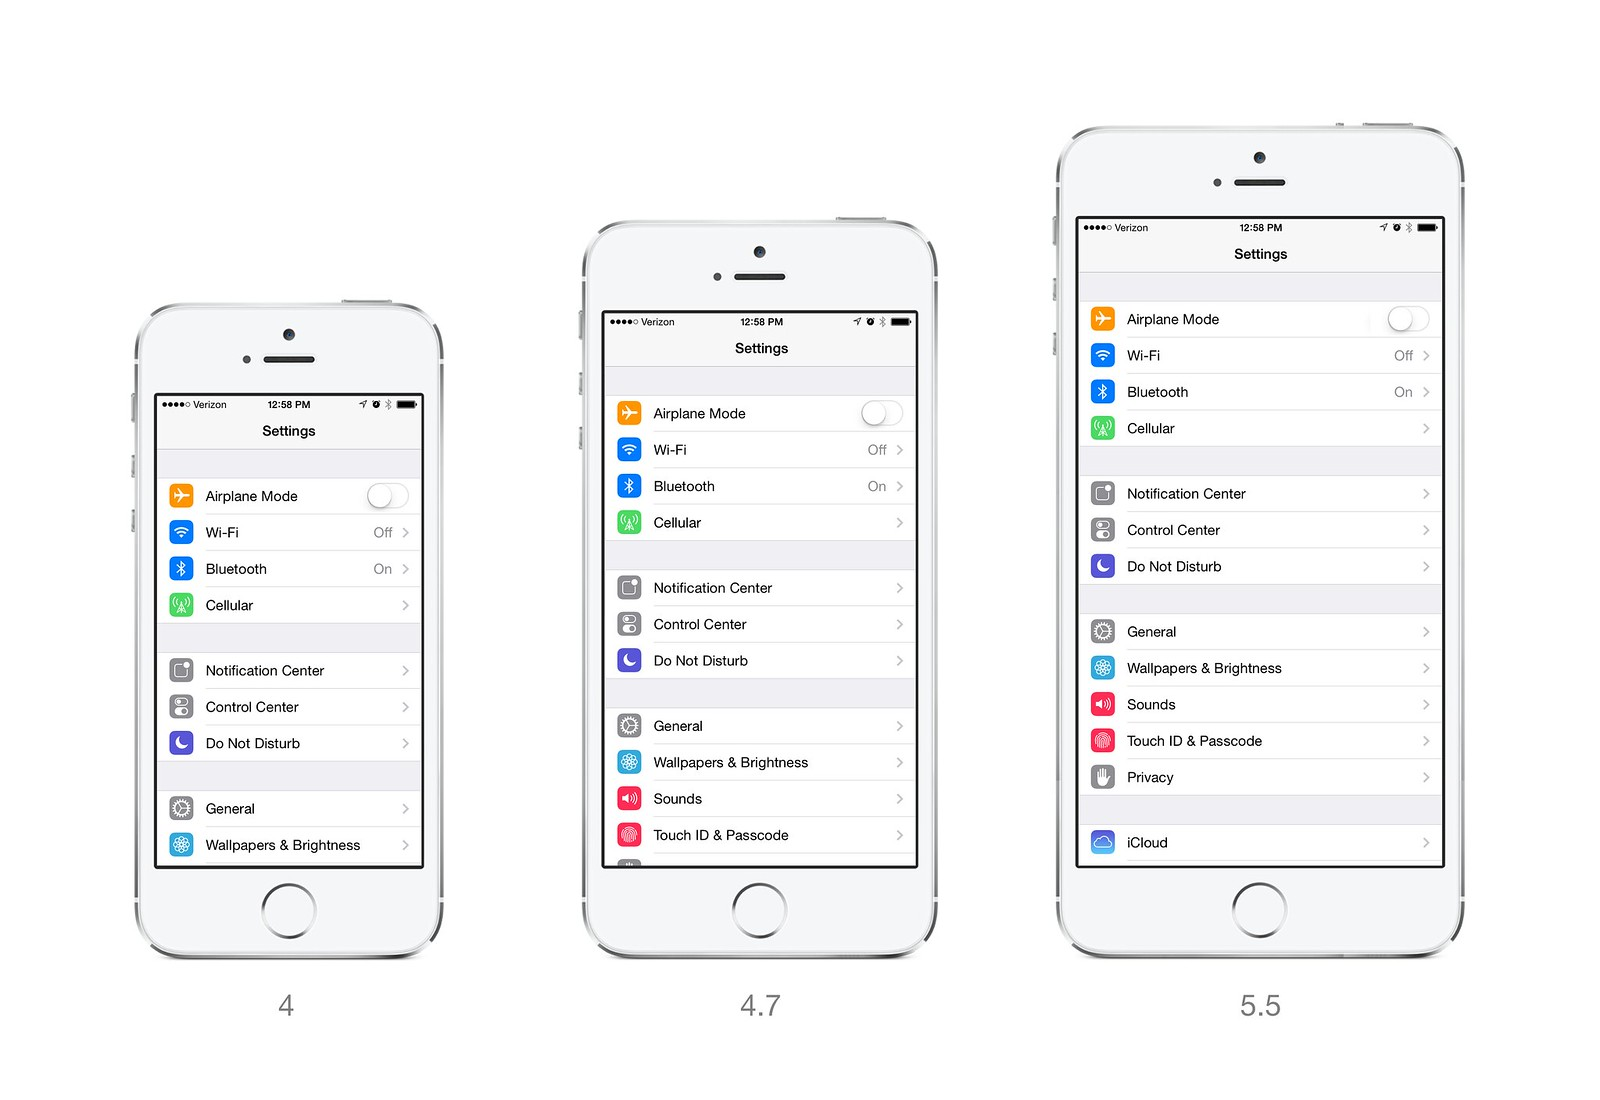 iPhone 6 More Space